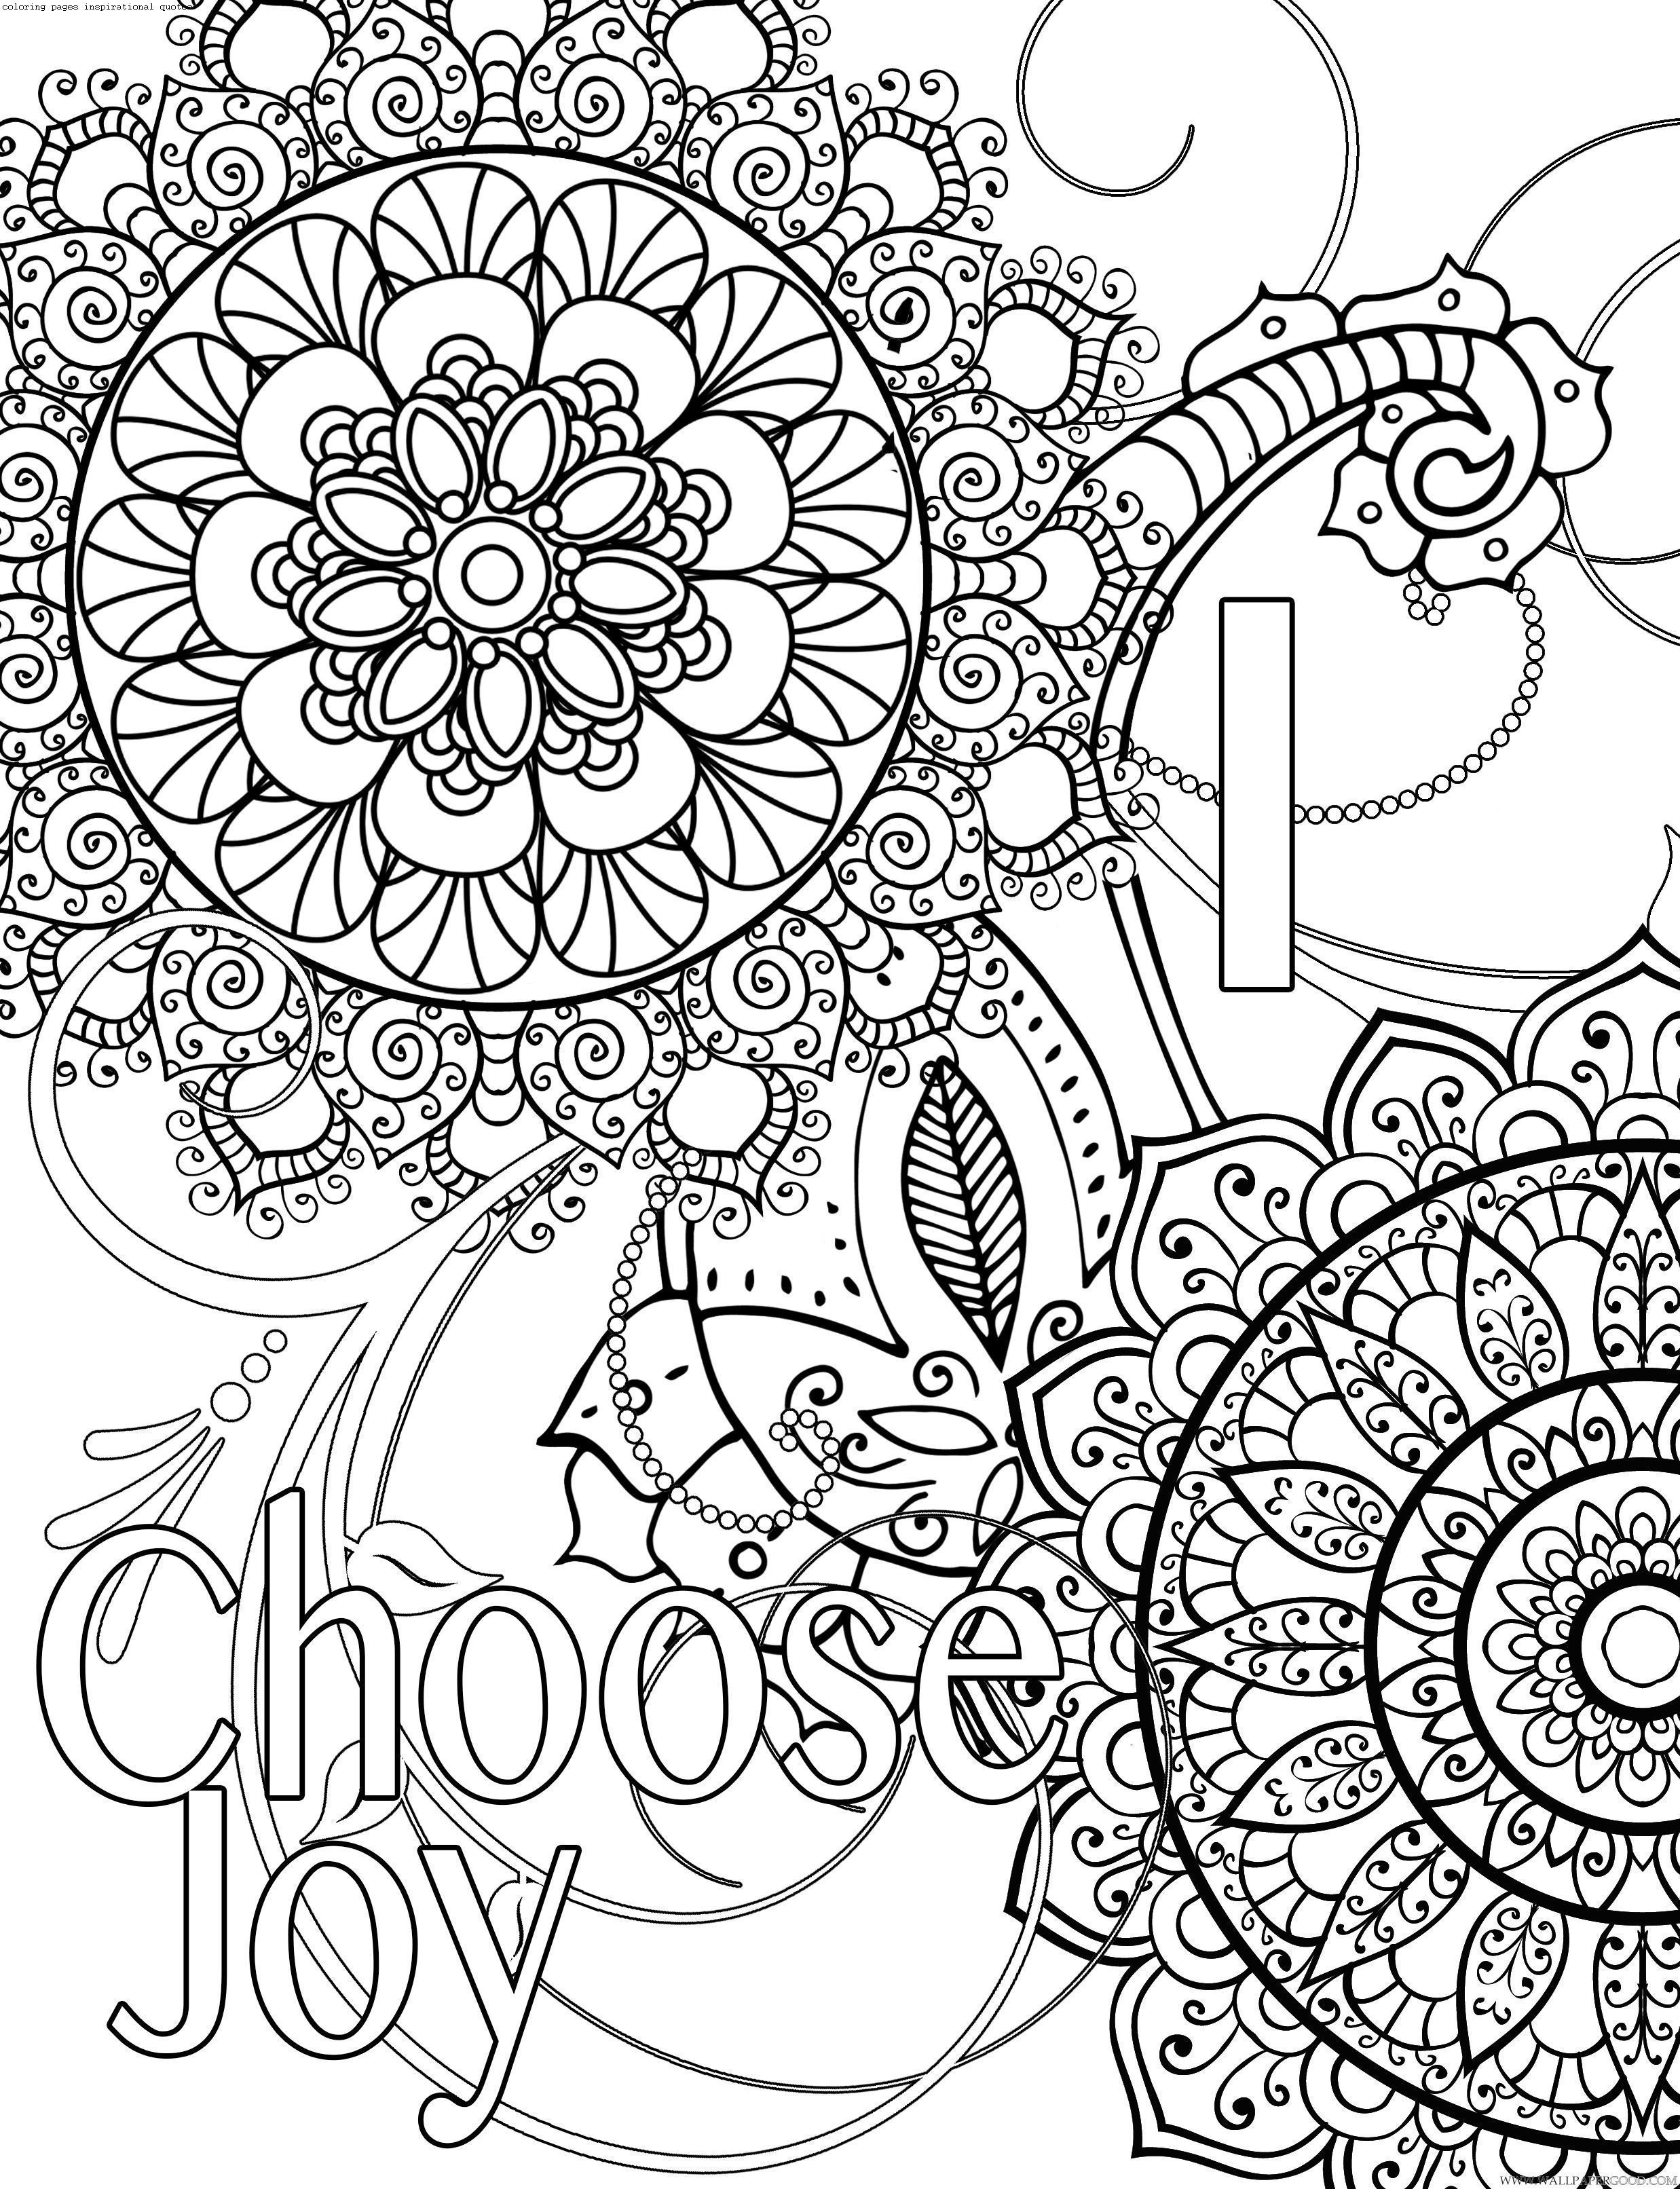 Free Printable Coloring Pages Inspirational Quotes Free Printable Coloring Pages Coloring Pages Inspirational Bible Coloring Pages